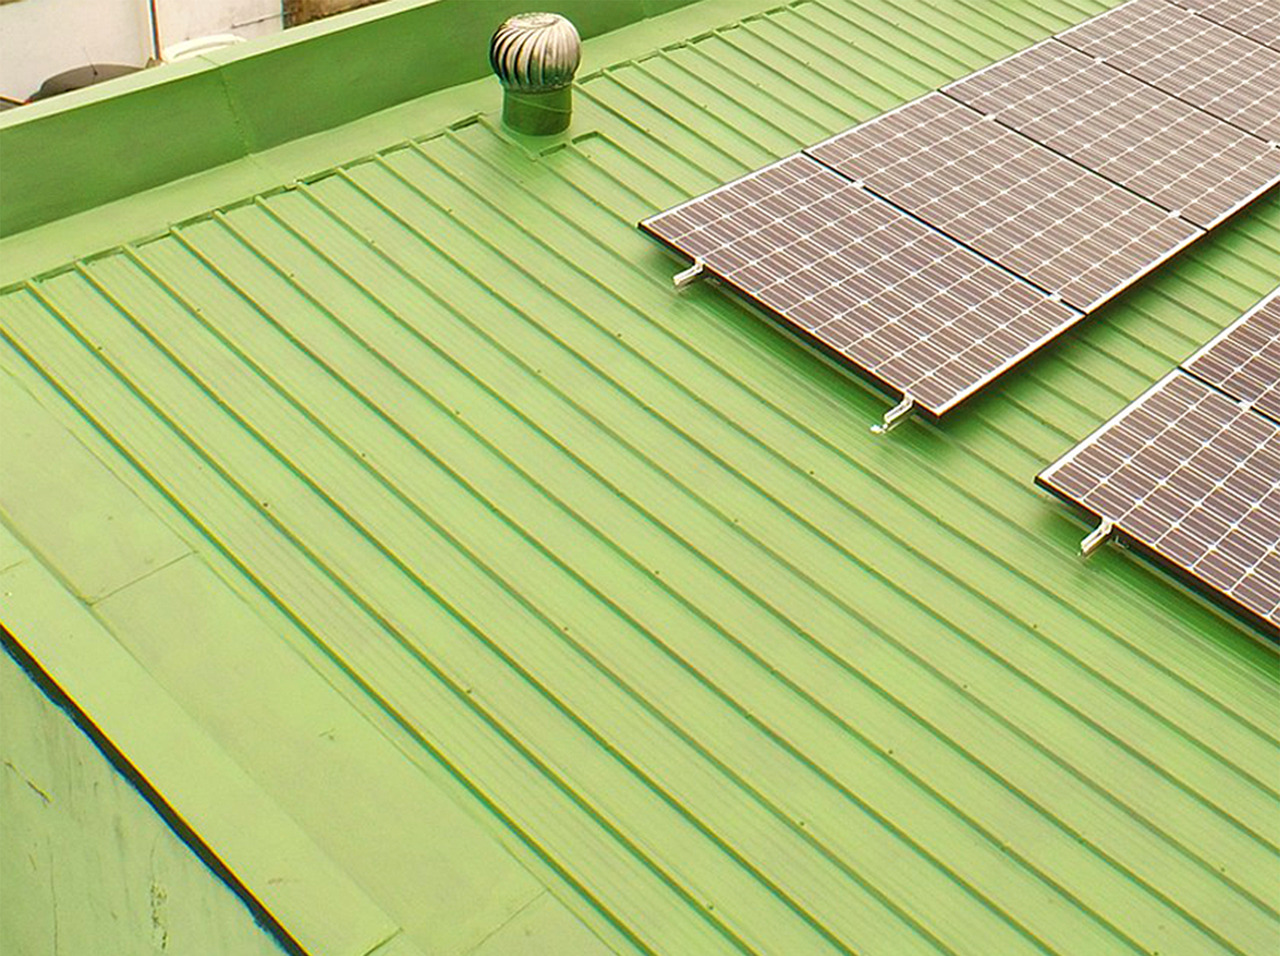 A photo of solar grids on a roof